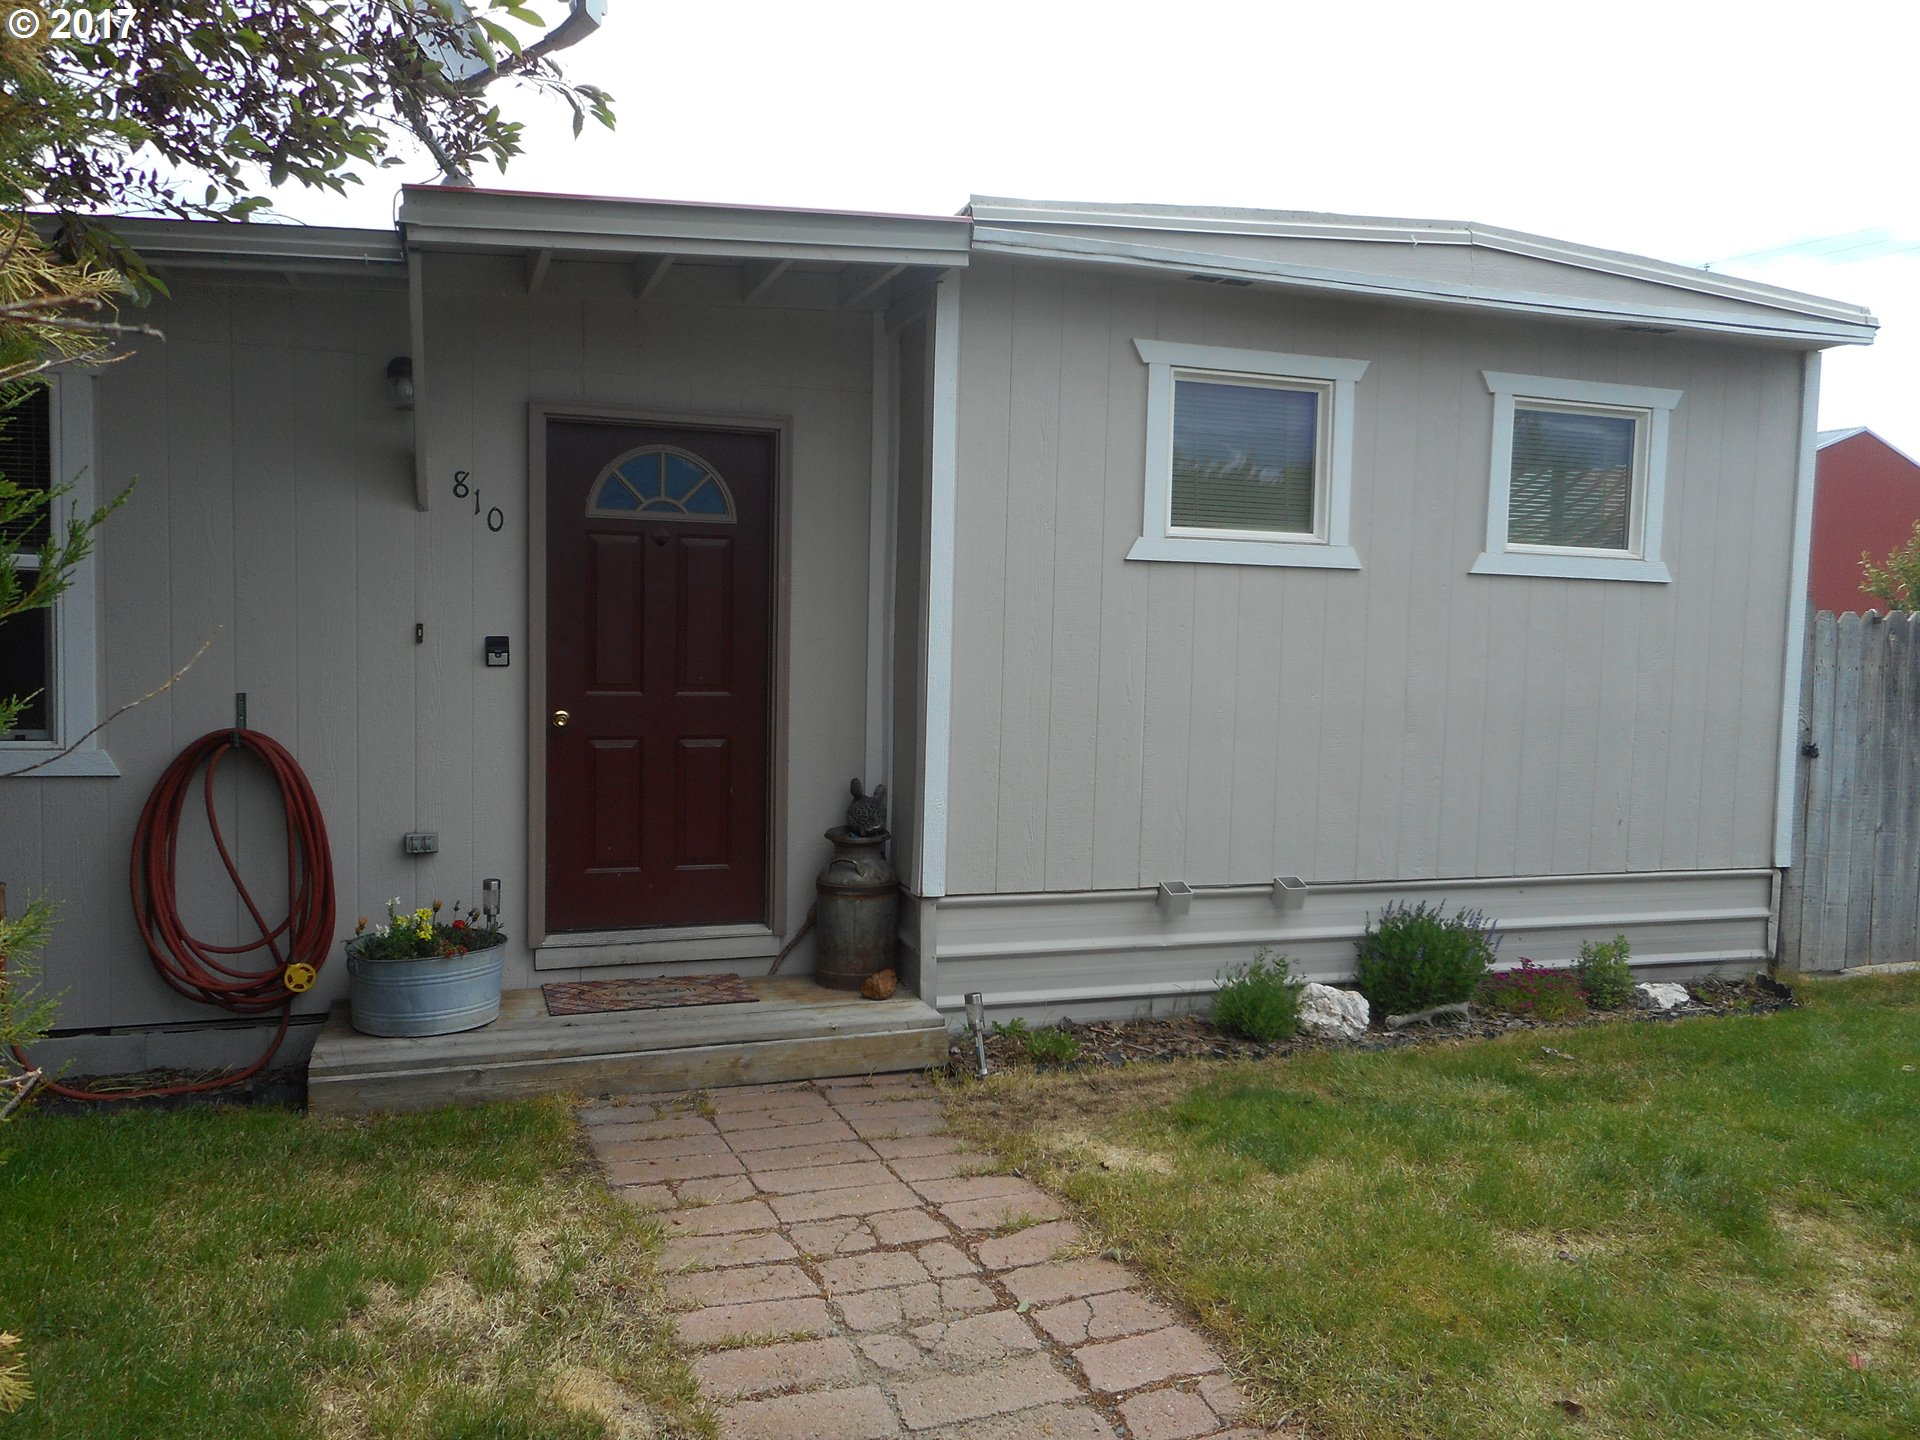 810 ROBERTS ST, Haines, OR 97833